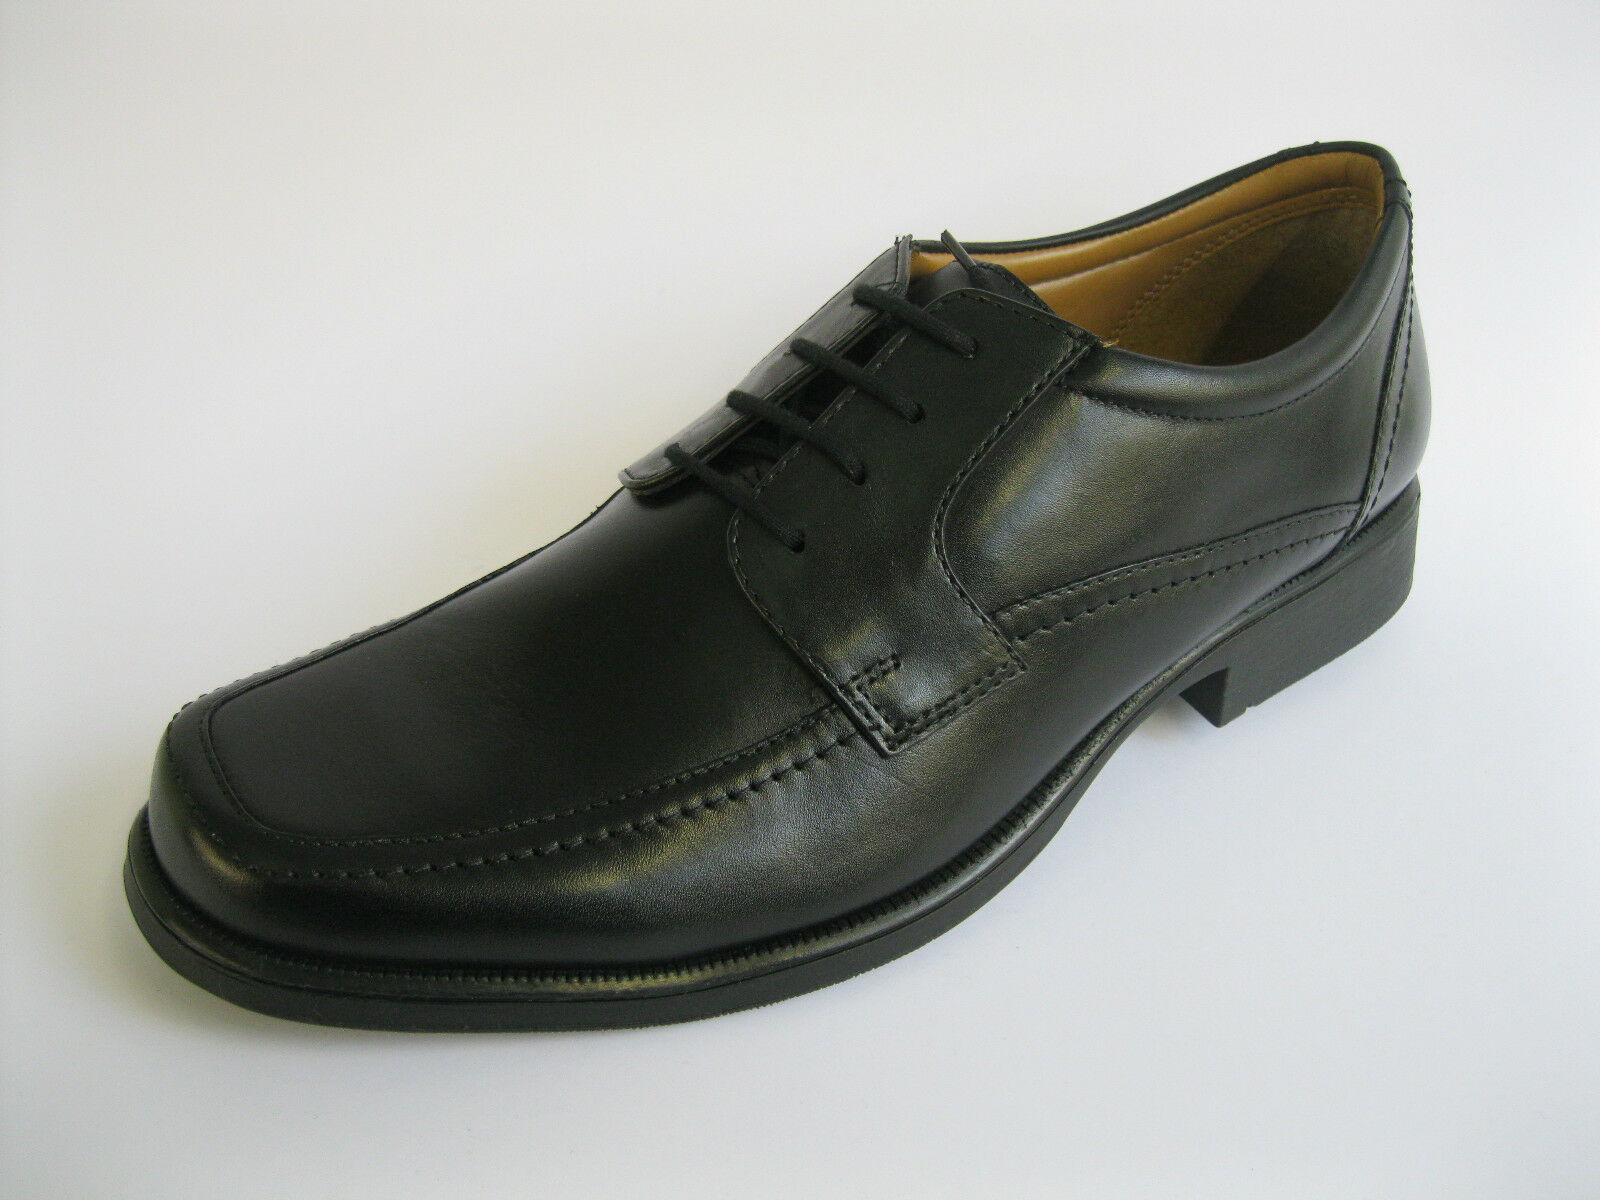 Clarks Hold Spring Mens Black Leather Lace-up shoes G Fitting (38B) (Kett)